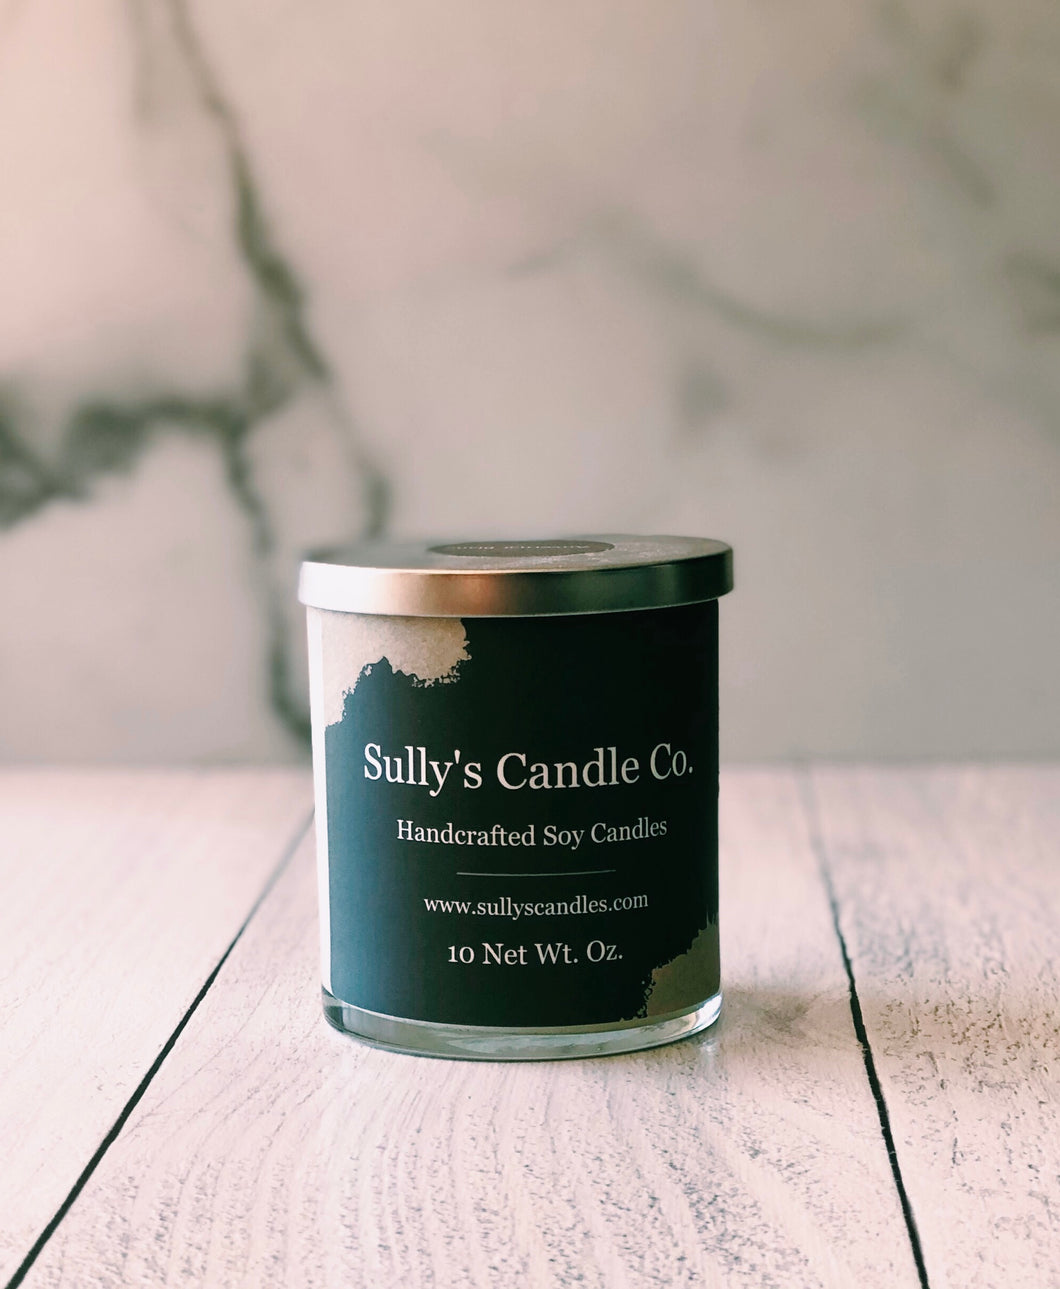 Hazelnut Coffee - Sully's Candle Co.